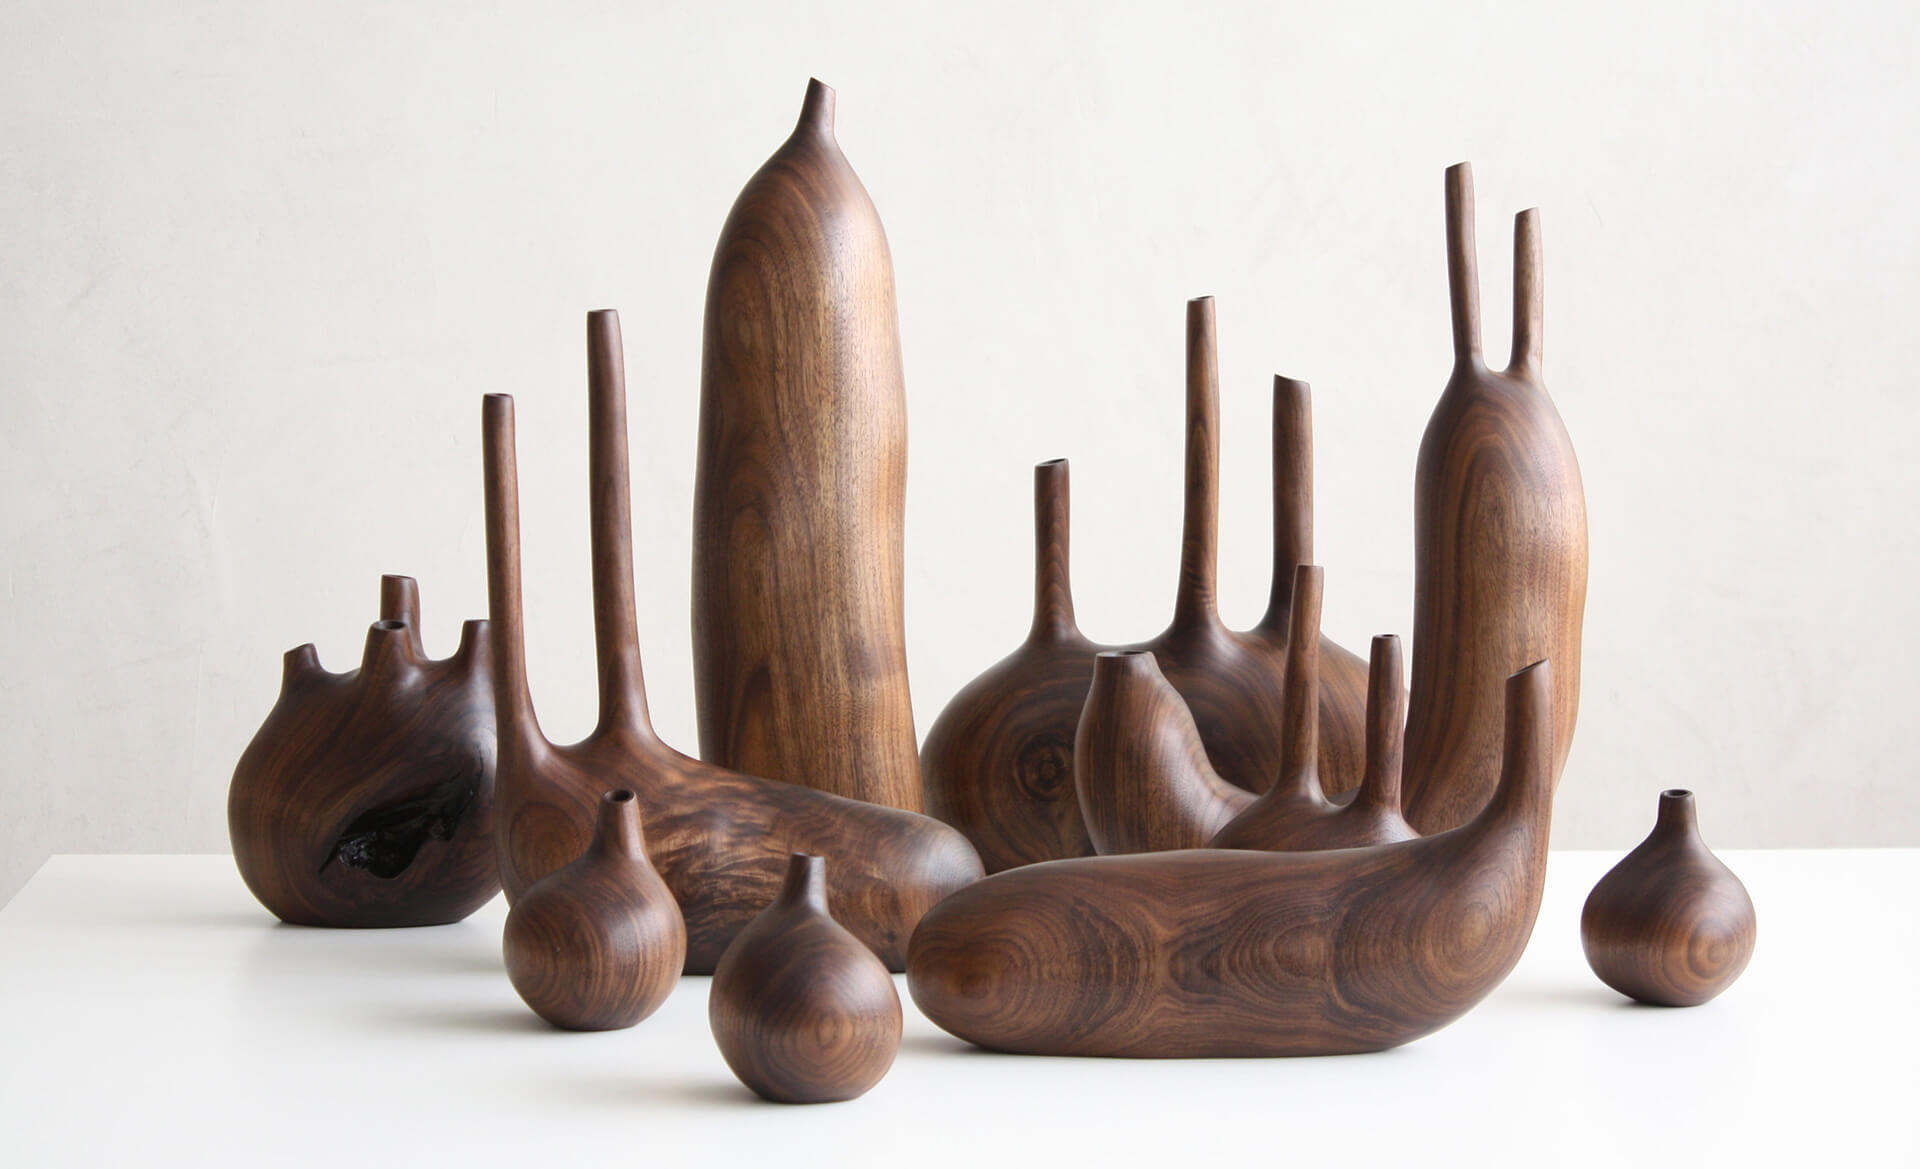 Twig Vases by Julian Watts | Julian Watts | 10 wood sculptors you should know | STIRworld